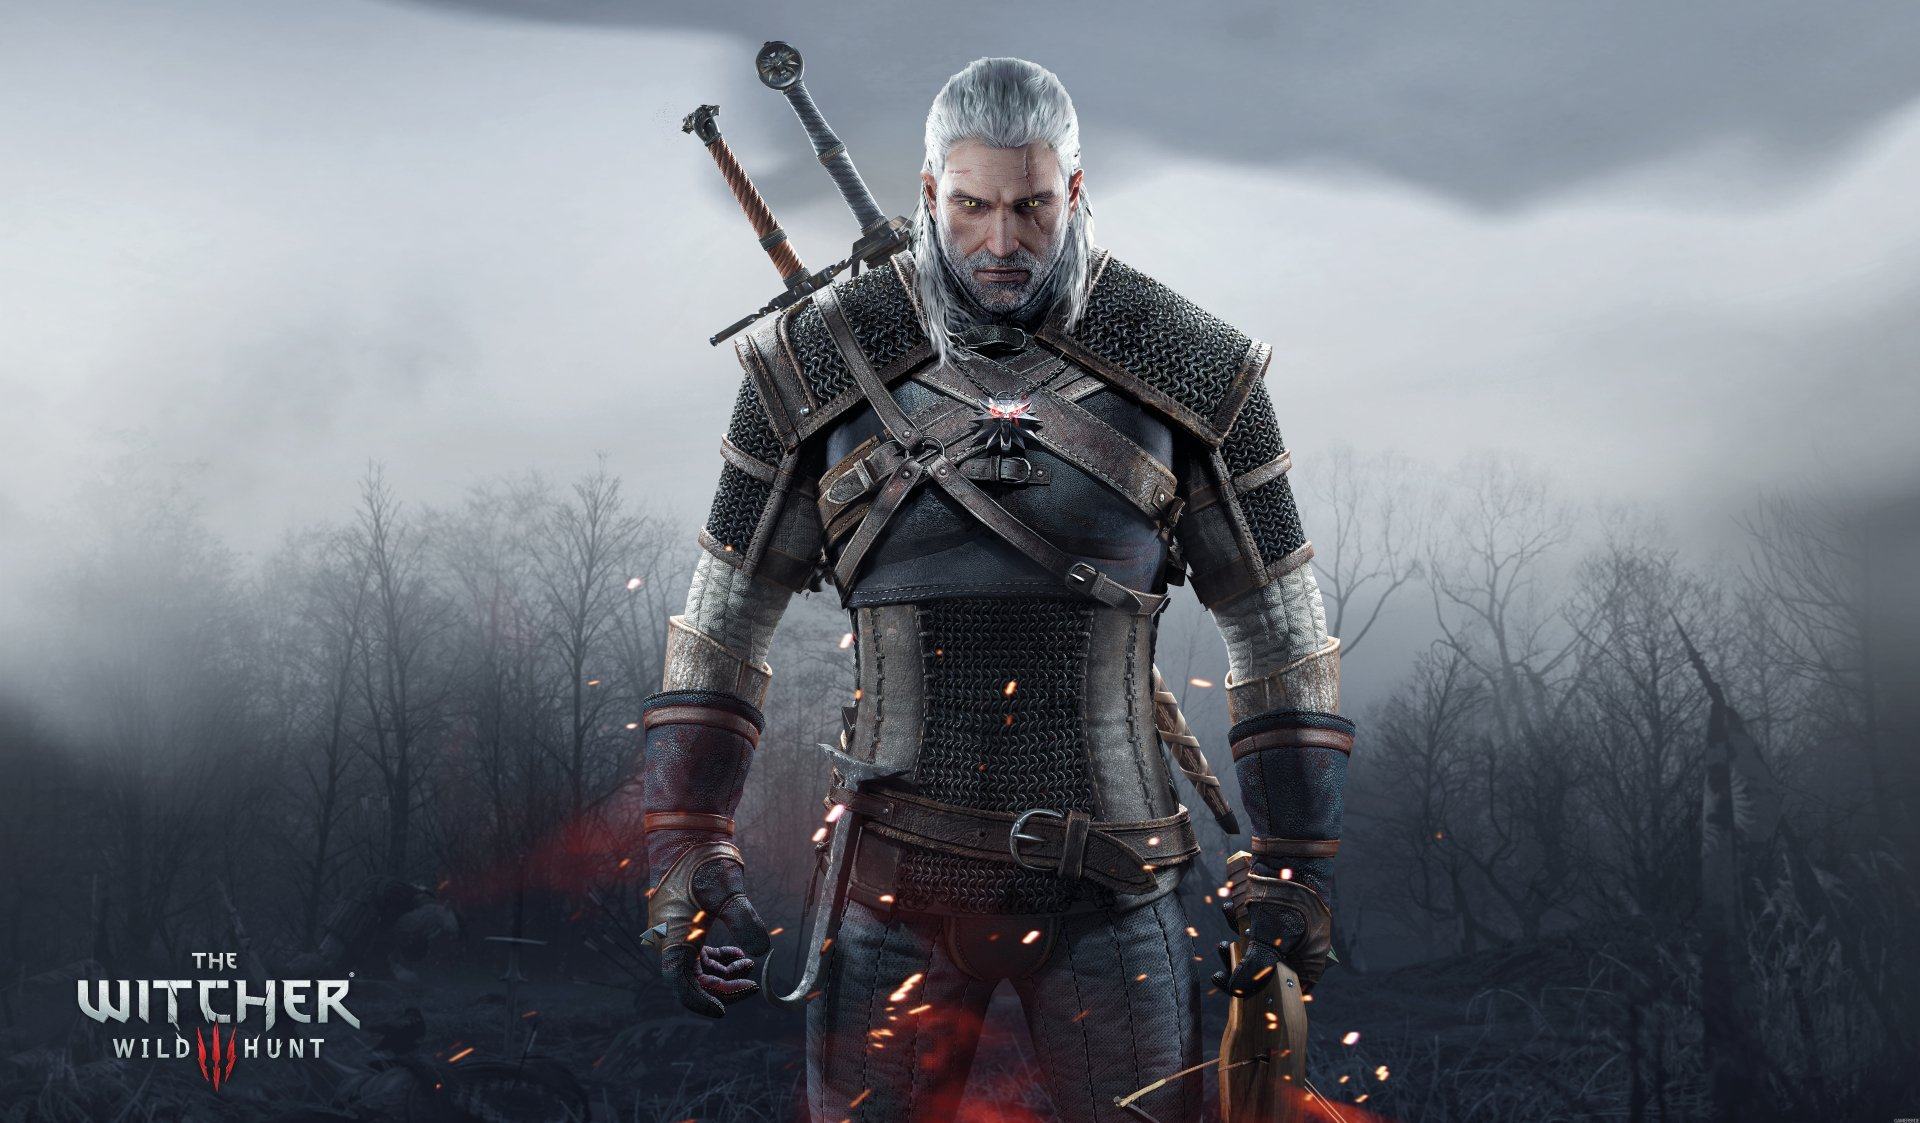 152 4k Ultra Hd The Witcher 3 Wild Hunt Wallpapers